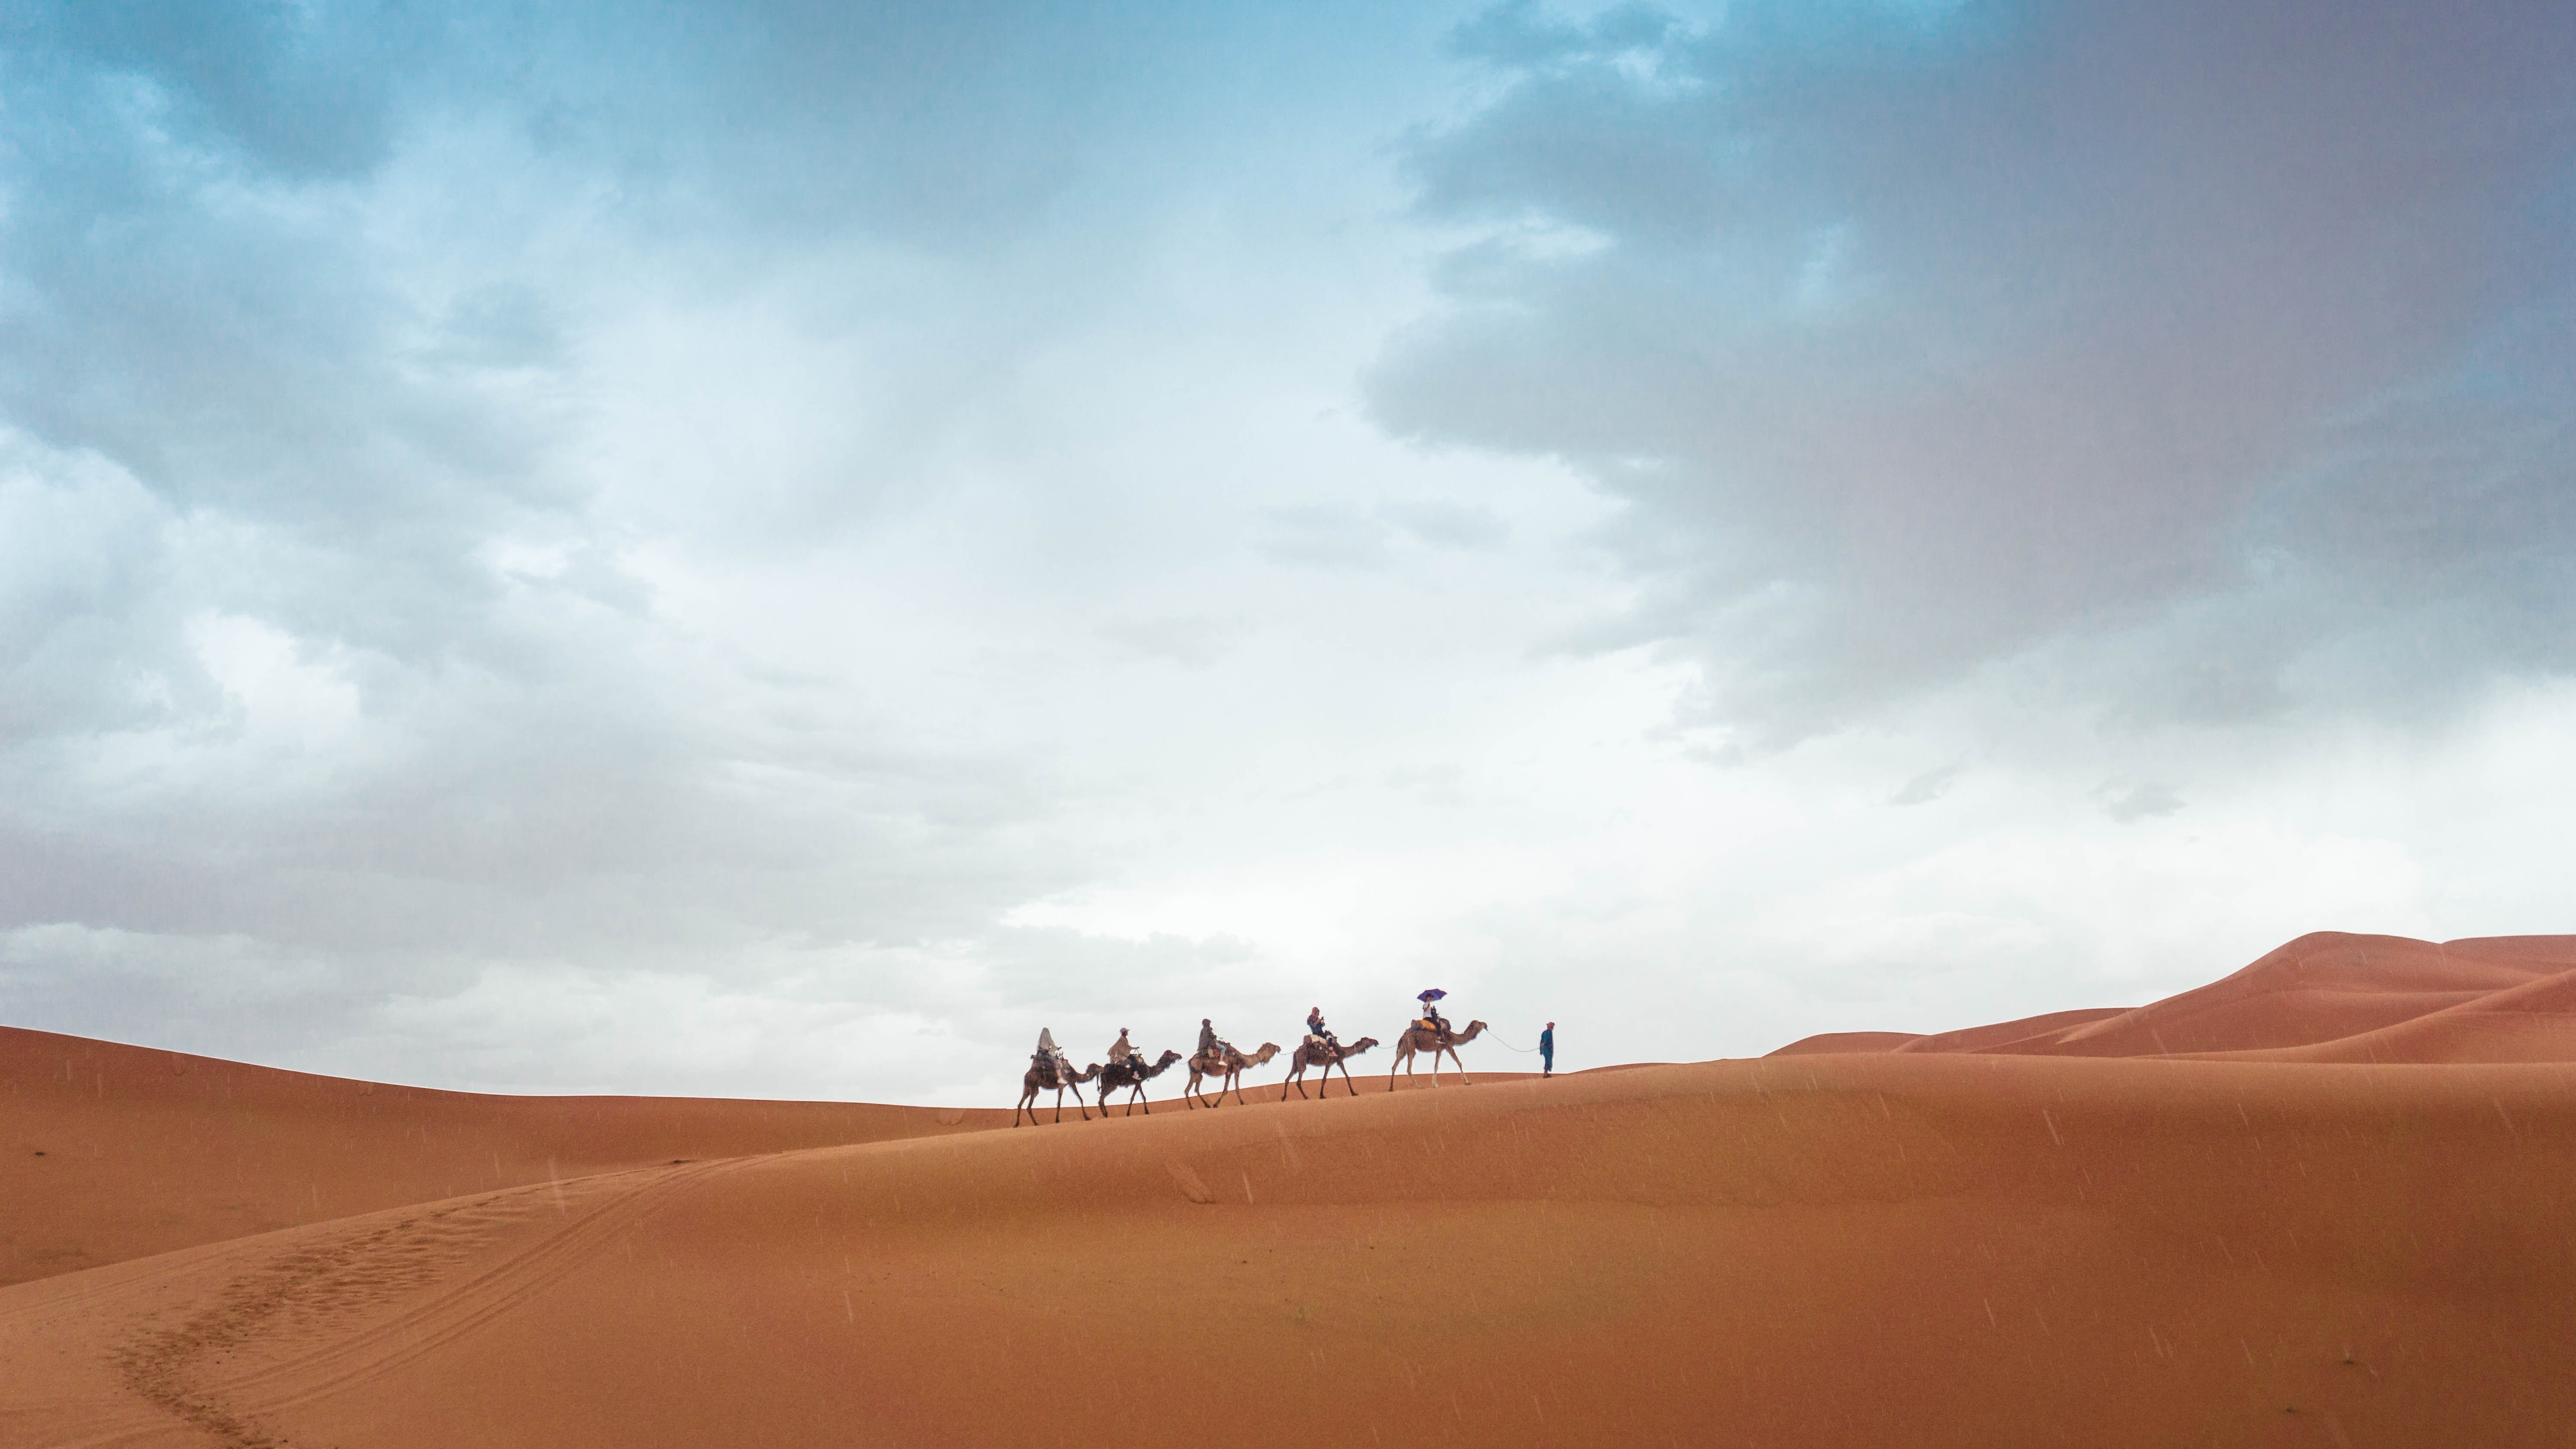 five camels walking on sand during daytime